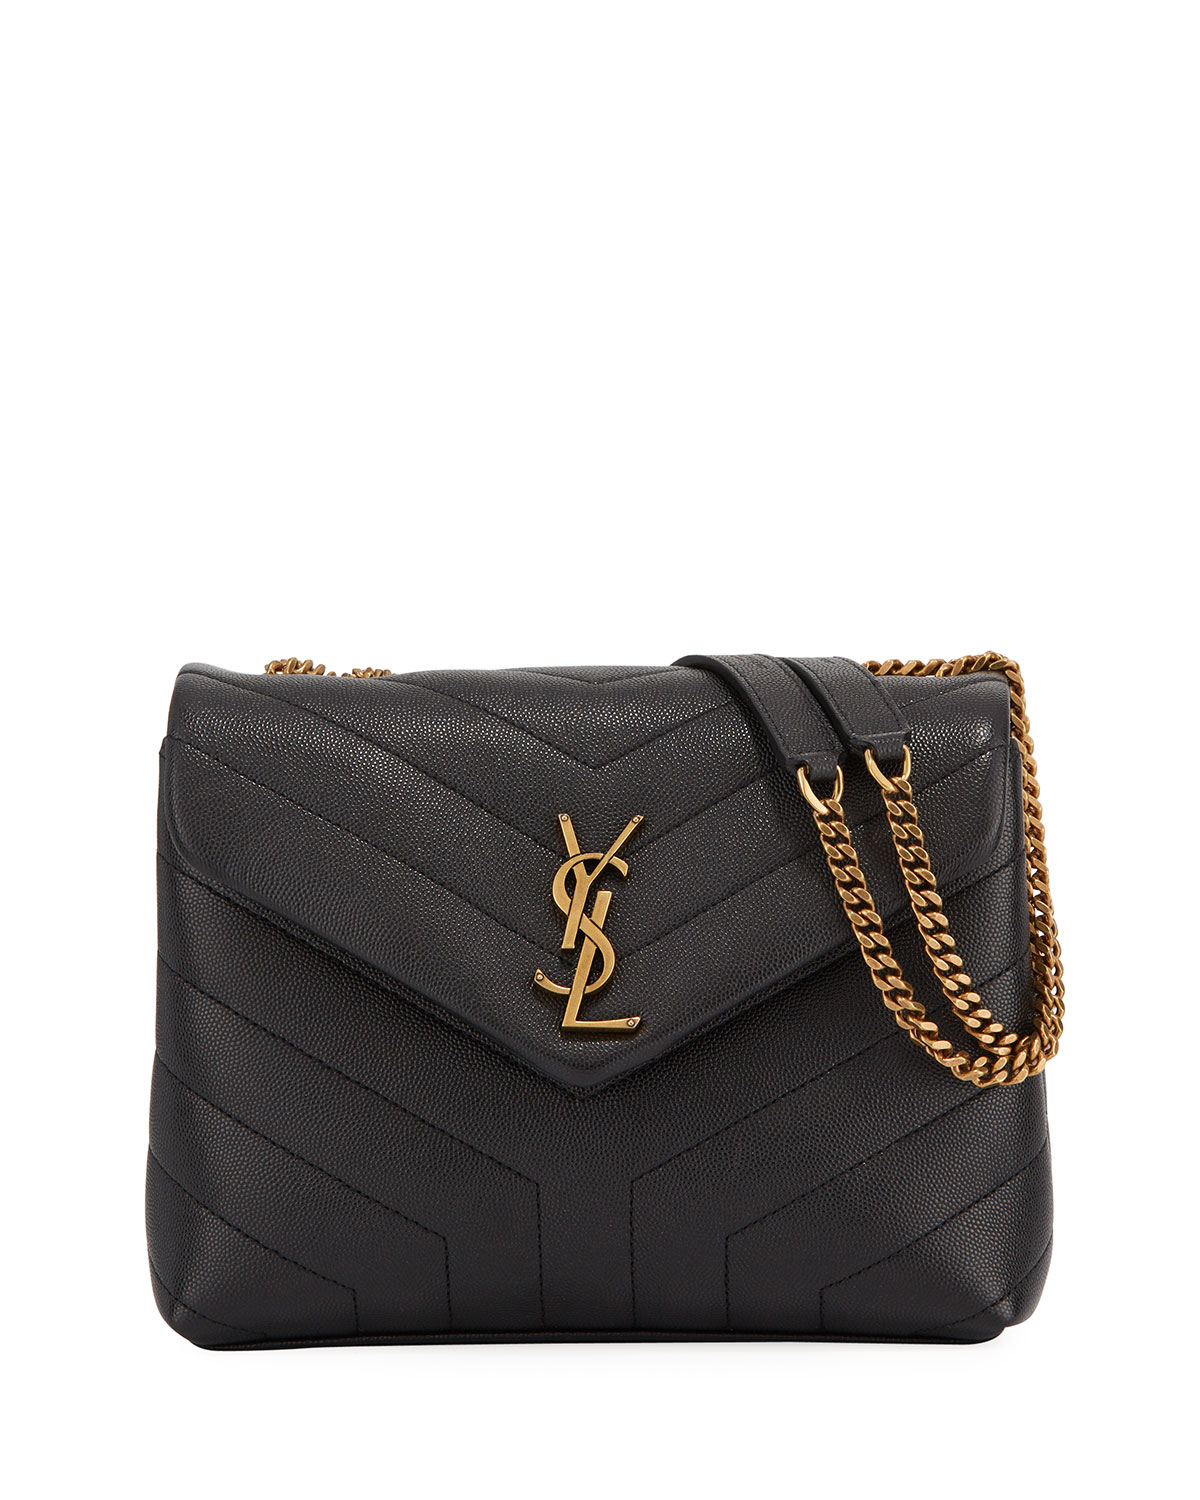 Loulou Monogram Ysl Small V Flap Grain De Poudre Shoulder Bag by Saint Laurent